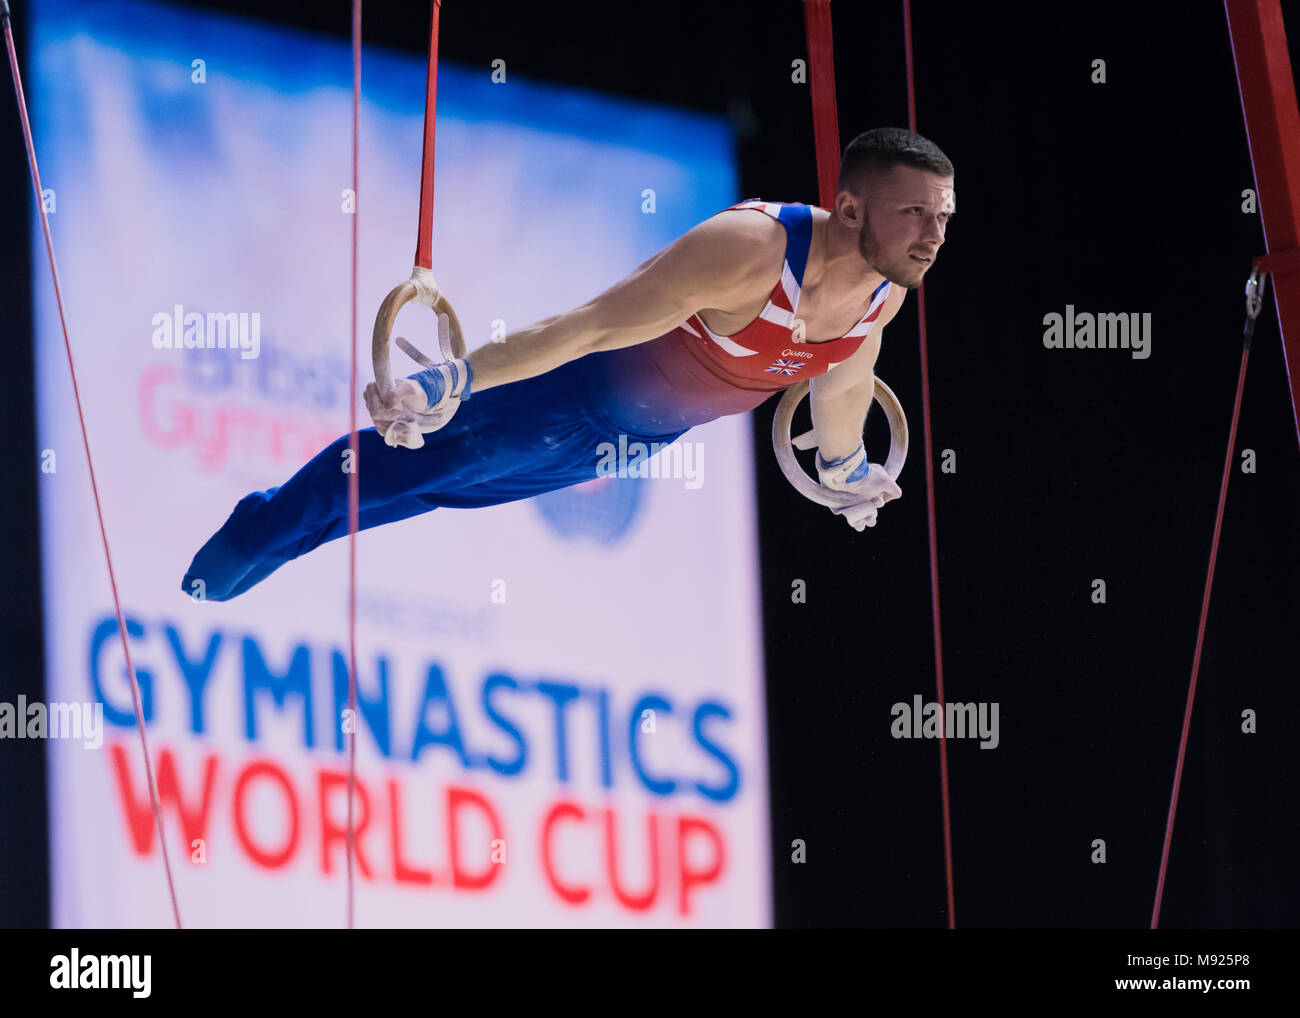 Birmingham, UK. 21st March, 2018. Dominick Gunnigham (GBR) competes on the Still Rings during the 2018 FIG Gymnastics World Cup at Arena Birmingham on Wednesday, 21 March 2018. Birmingham England. Credit: Taka Wu/Alamy Live News - Stock Image